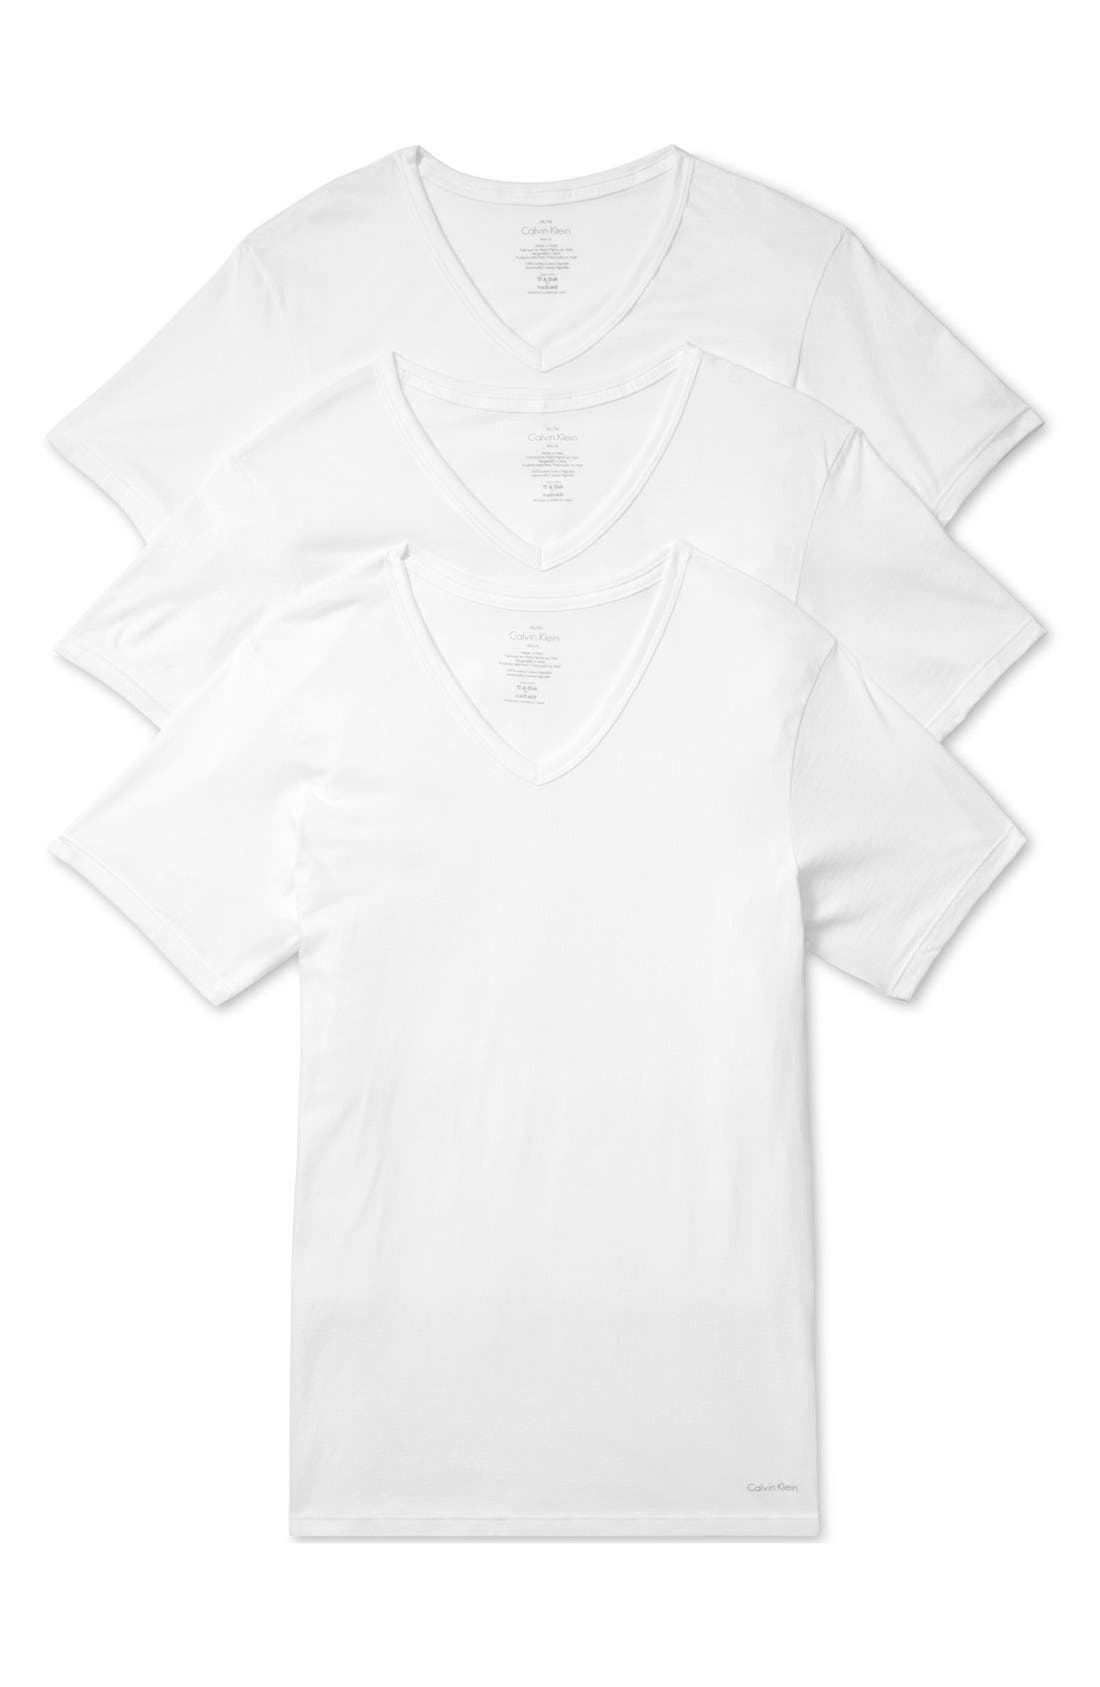 Calvin Klein Slim Fit 3-Pack Cotton T-Shirt